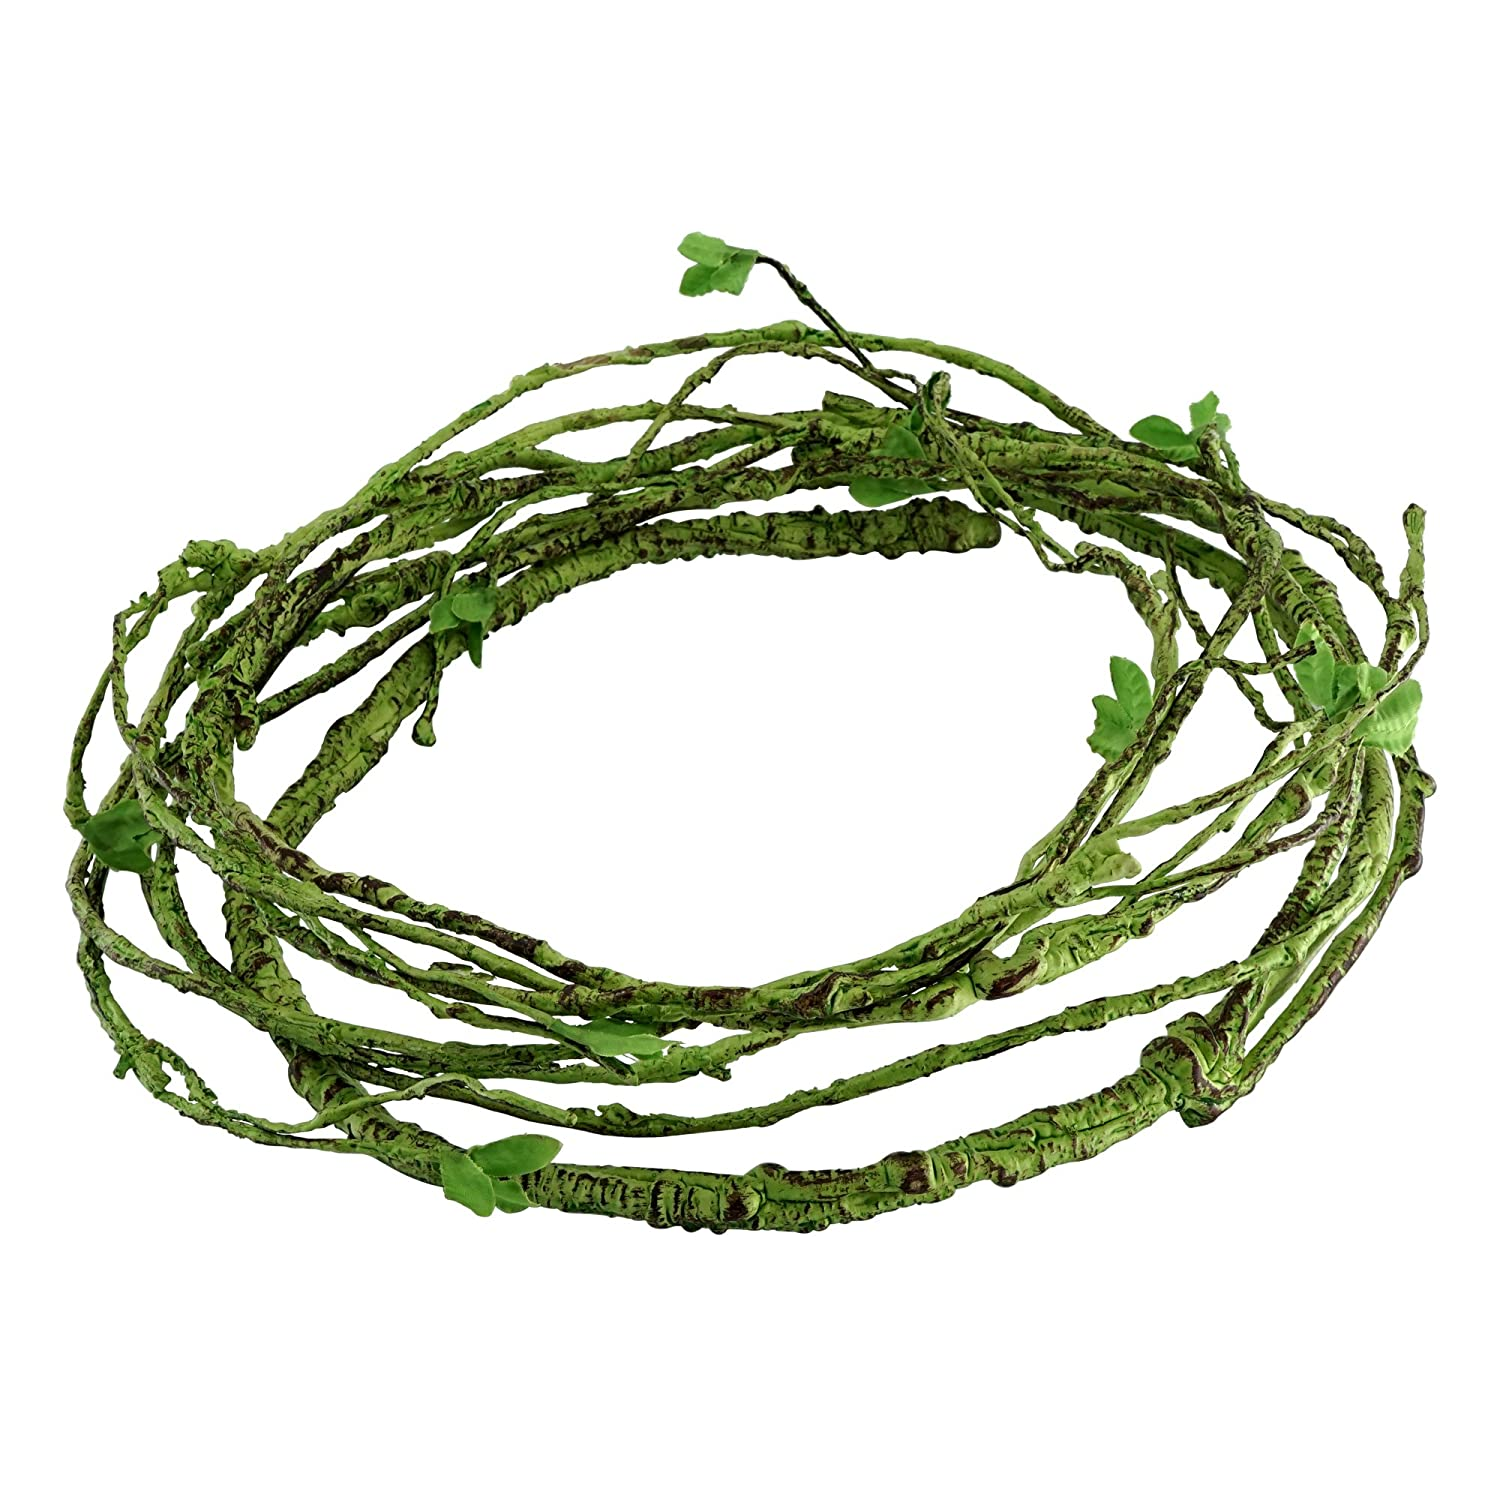 (Green Vines-T) Jungle Vines Flexible Pet Habitat Decor for Lizards, Frogs, Snakes and Other Reptiles